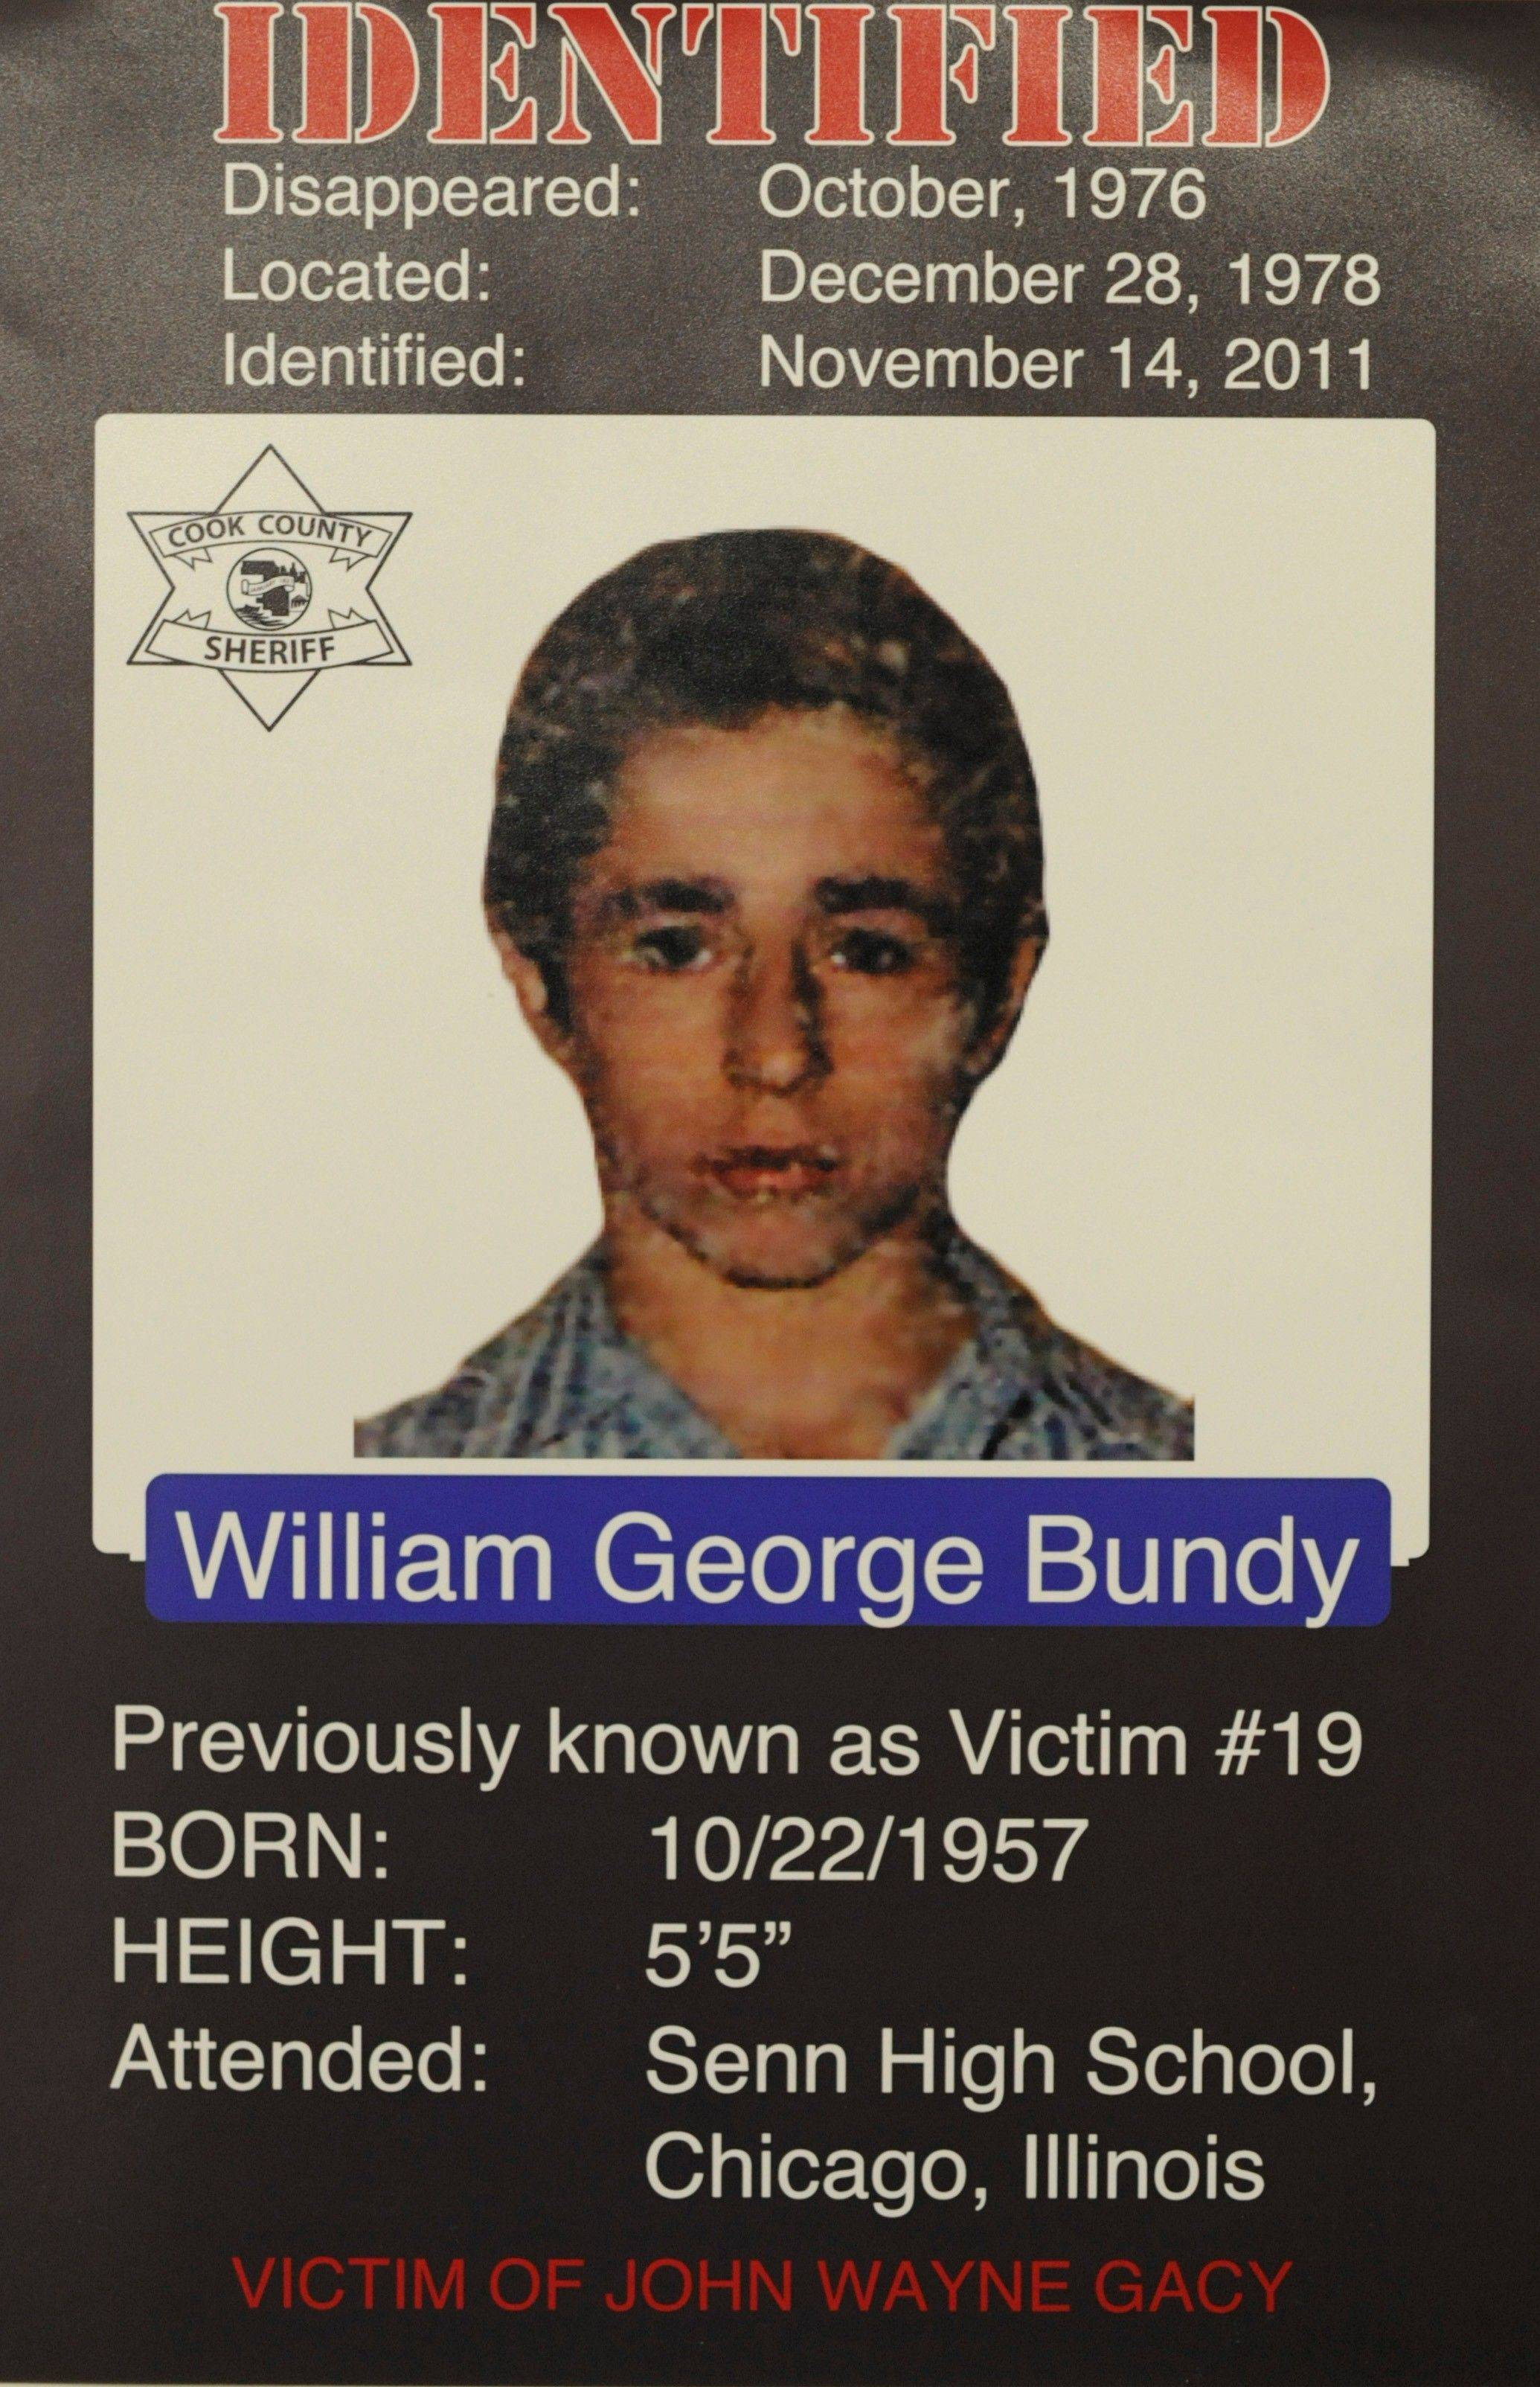 William George Bundy in a school I.D. photo from Senn High School. Bundy was a 19-year-old Chicago construction worker who disappeared in 1976.